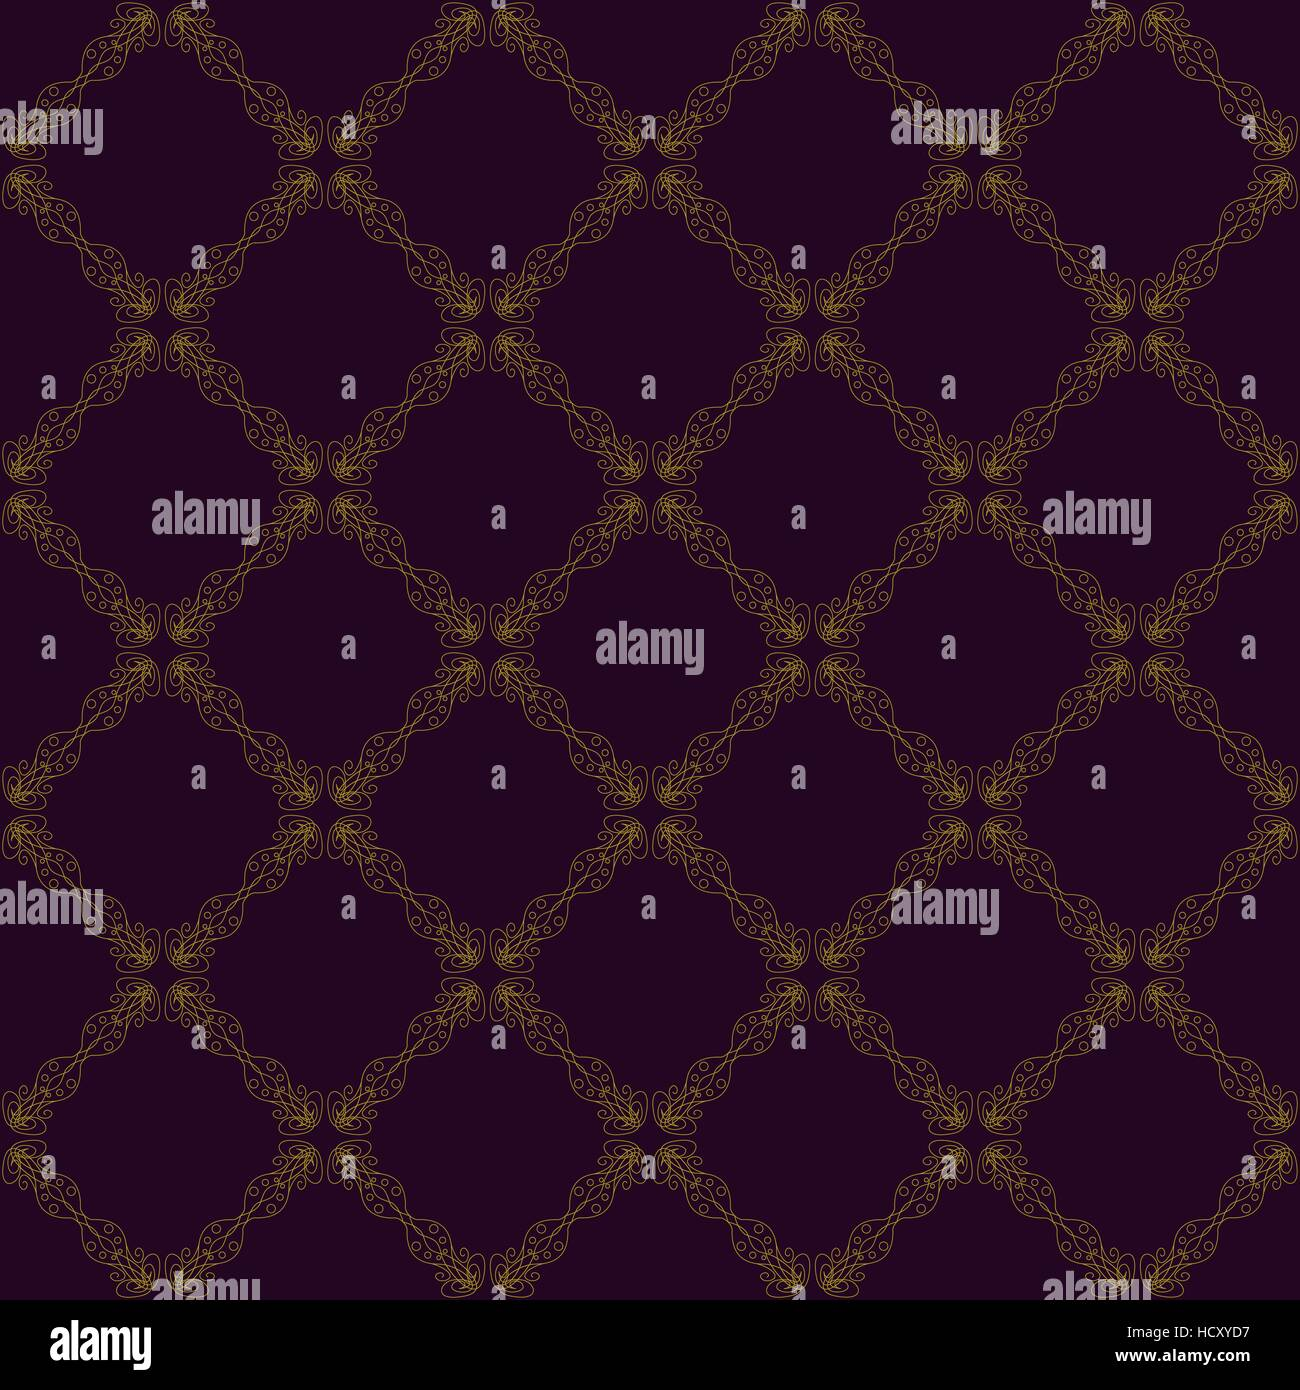 Seamless abstract vintage purple pattern - Stock Image